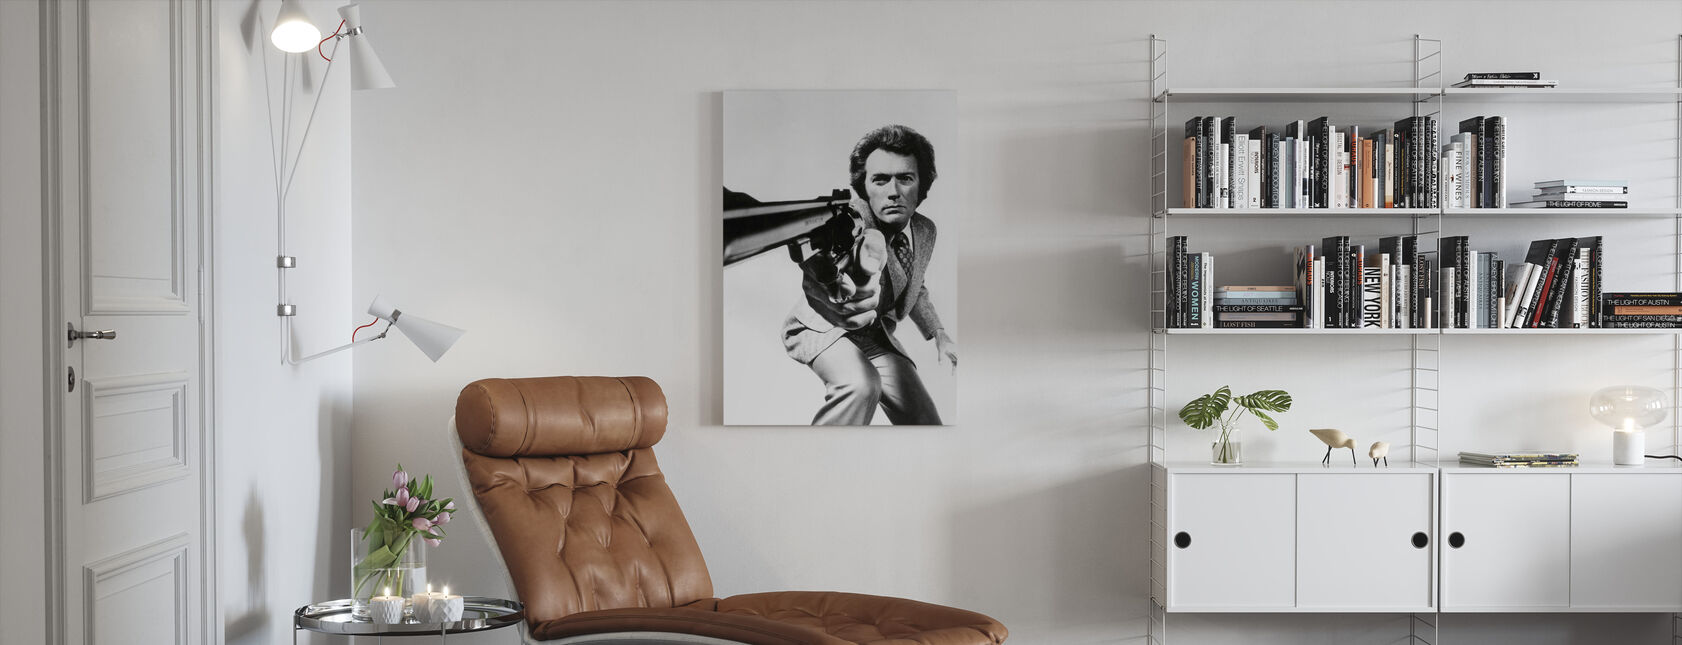 Clint Eastwood in Magnum Force - Canvas print - Living Room